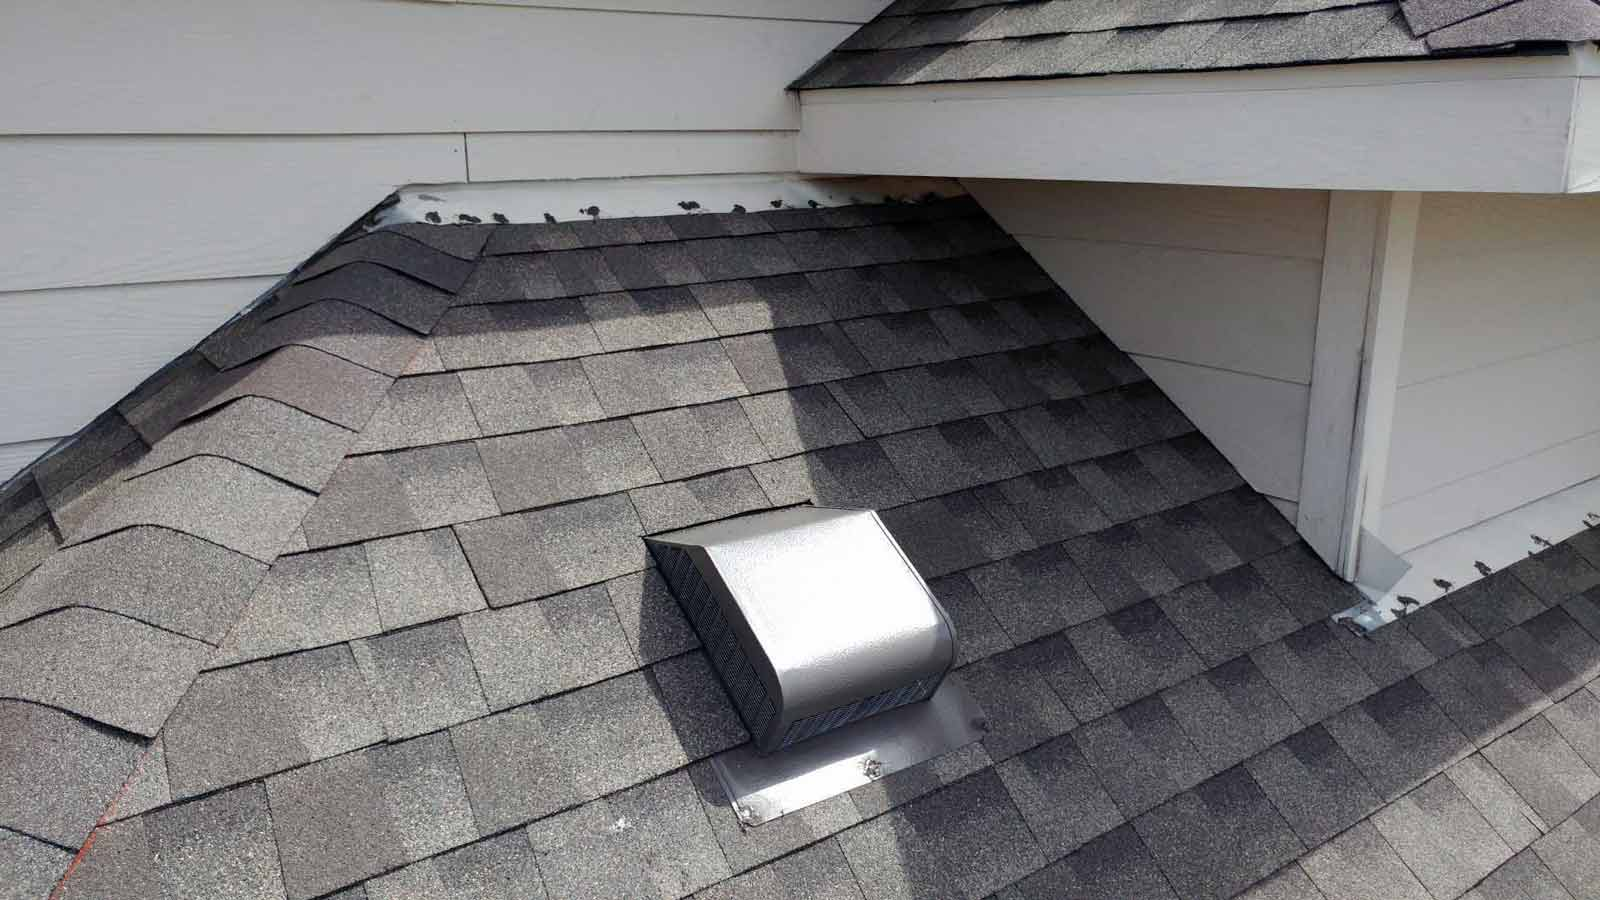 Best Roofers for Roof Repairs in Garland, Texas | Elevated Roofing